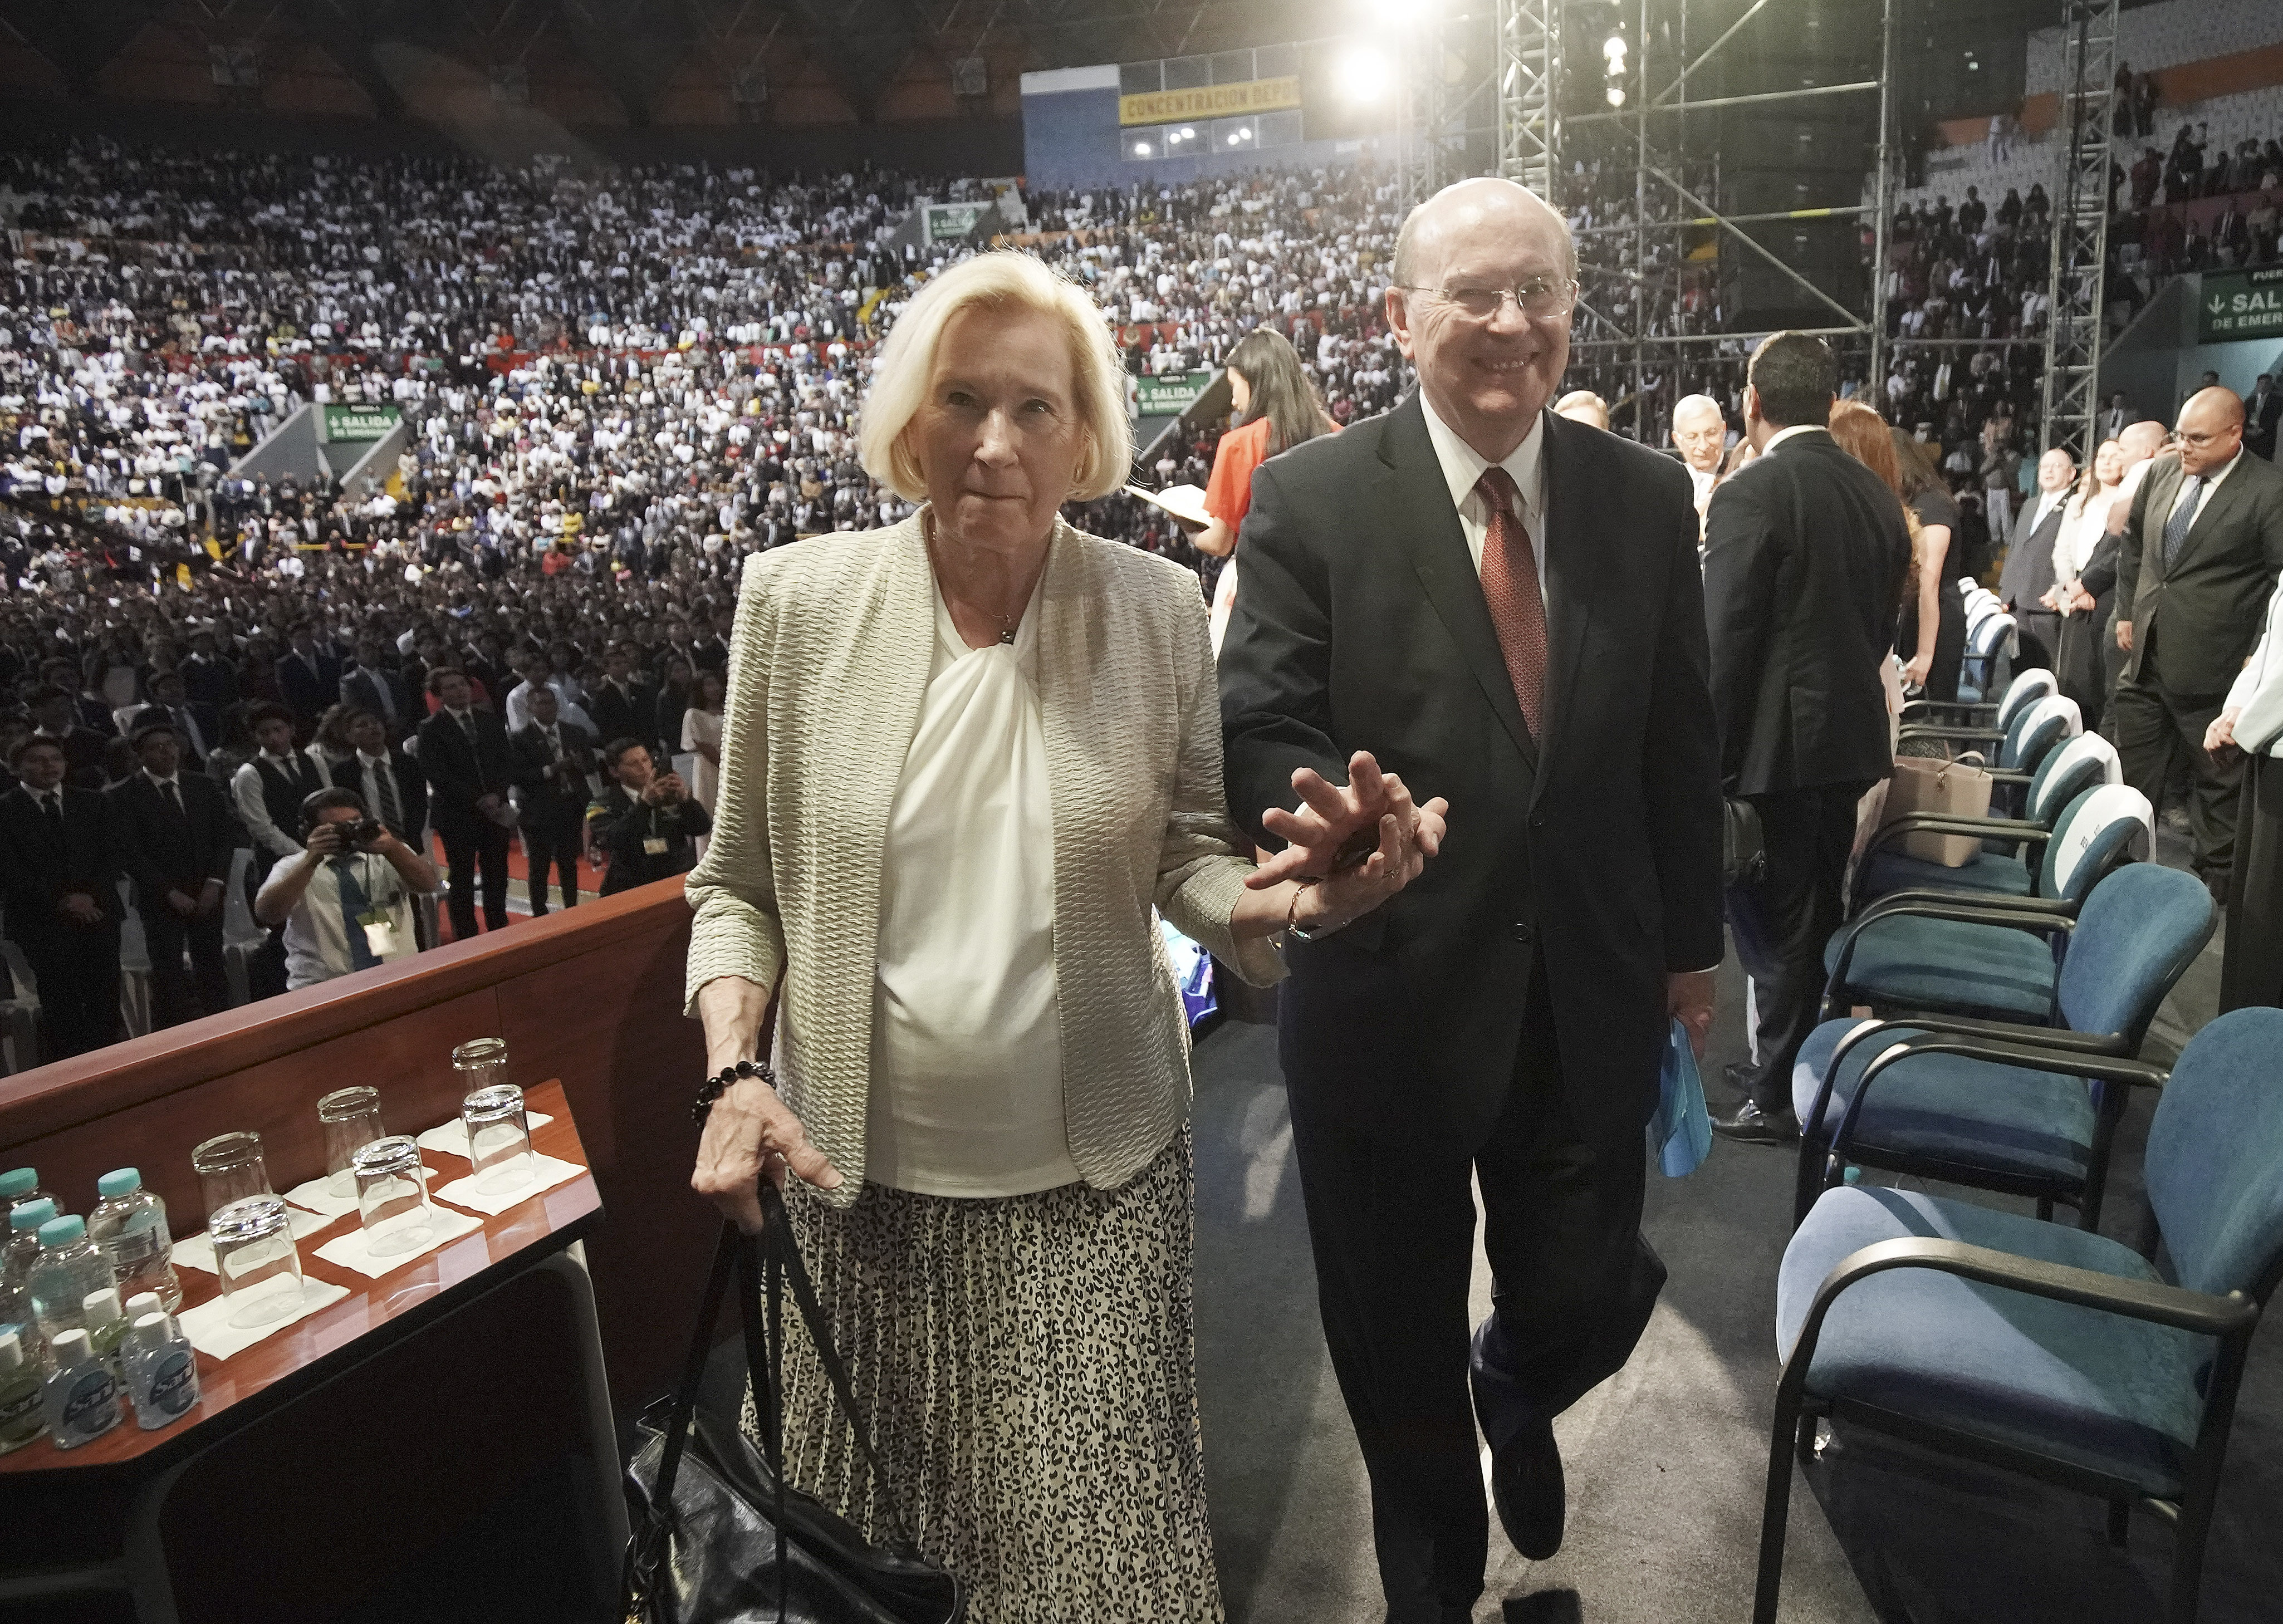 Elder Quentin L. Cook, of the Quorum of the Twelve Apostles of The Church of Jesus Christ of Latter-day Saints, and his wife, Sister Mary Cook, leave the stand after a devotional in Quito, Ecuador, on Monday, Aug. 26, 2019.